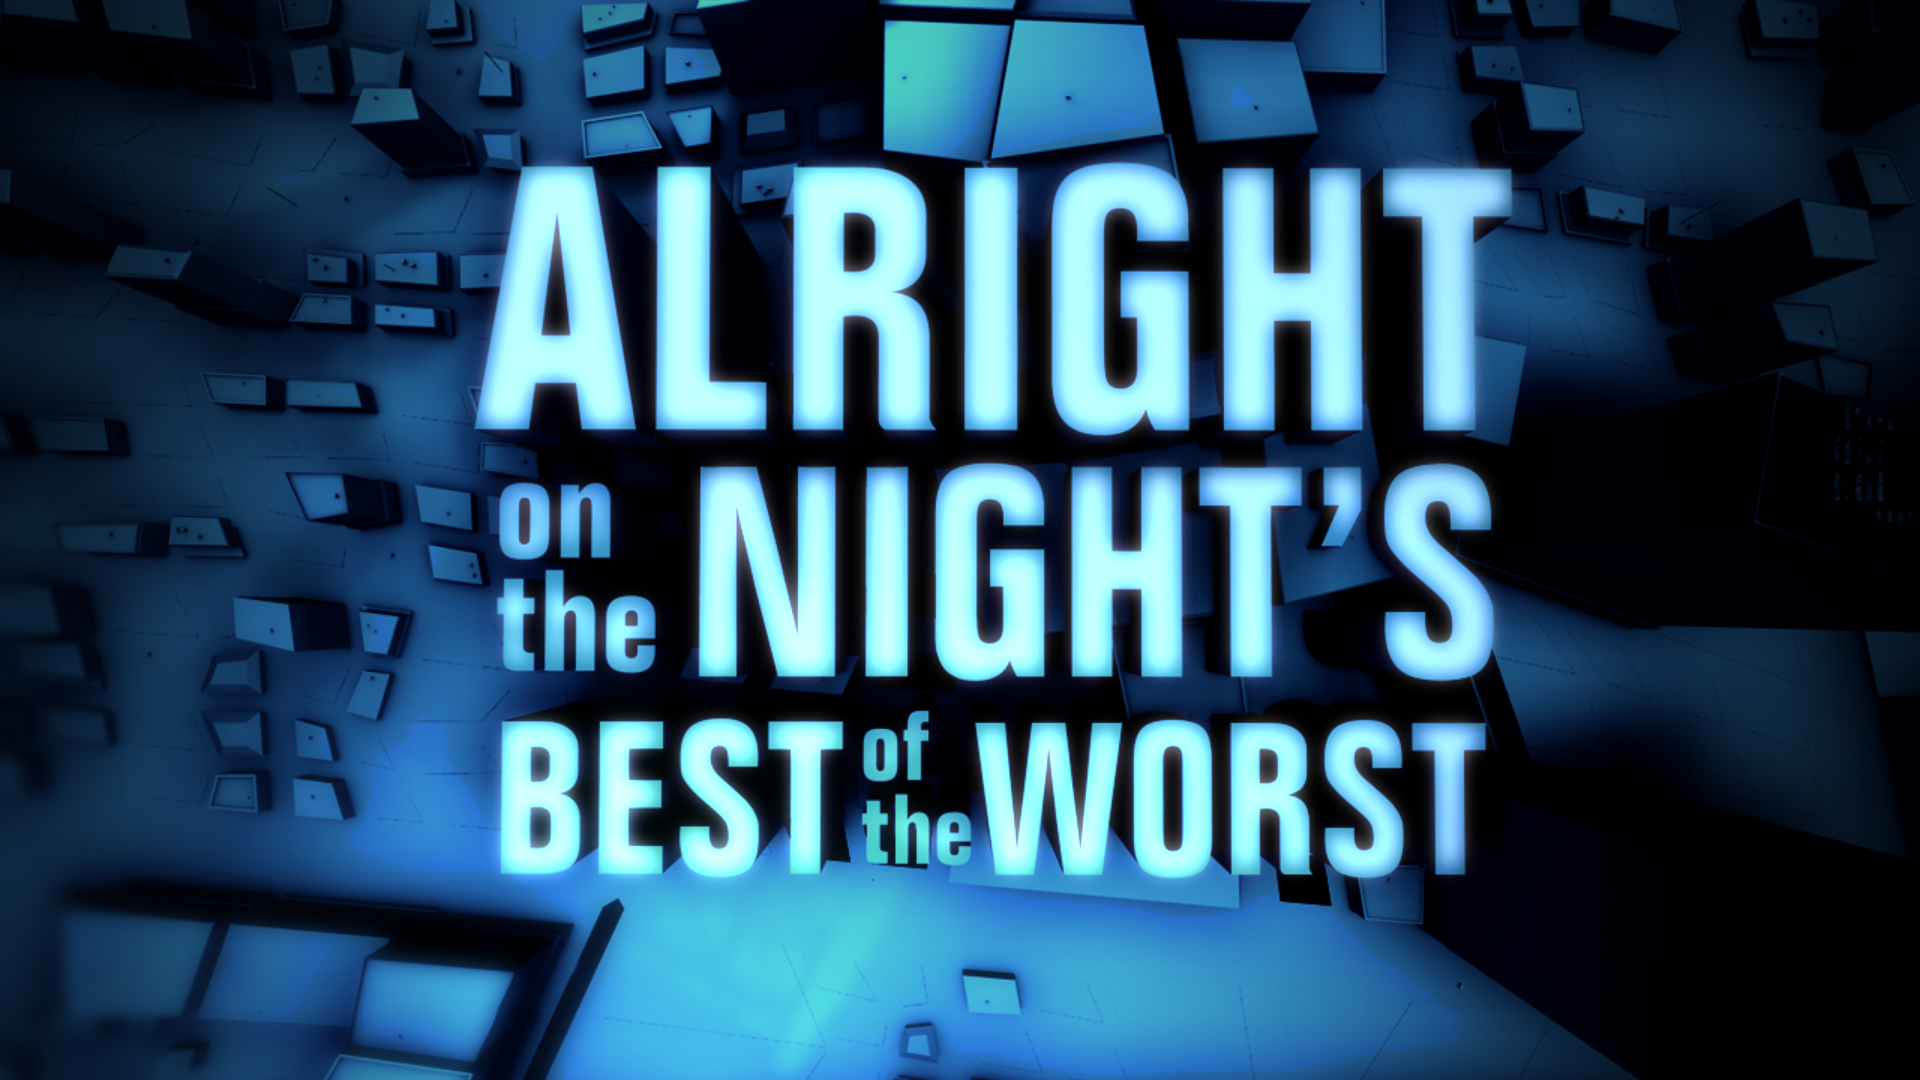 It'll Be Alright - Best and Worst